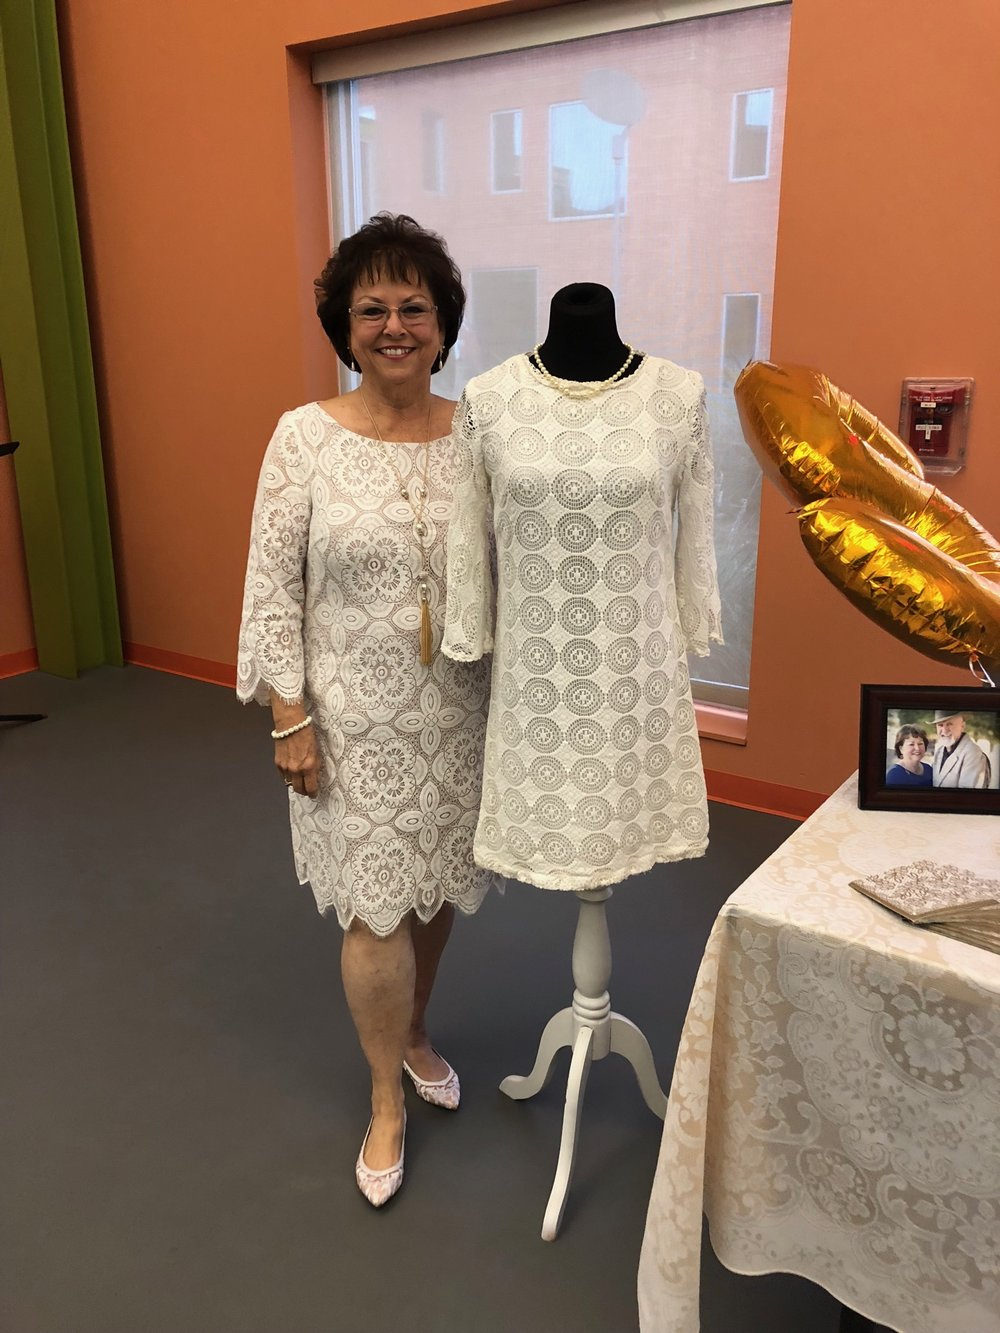 Vickie Tucker standing next to her wedding dress at their 50thanniversary party.